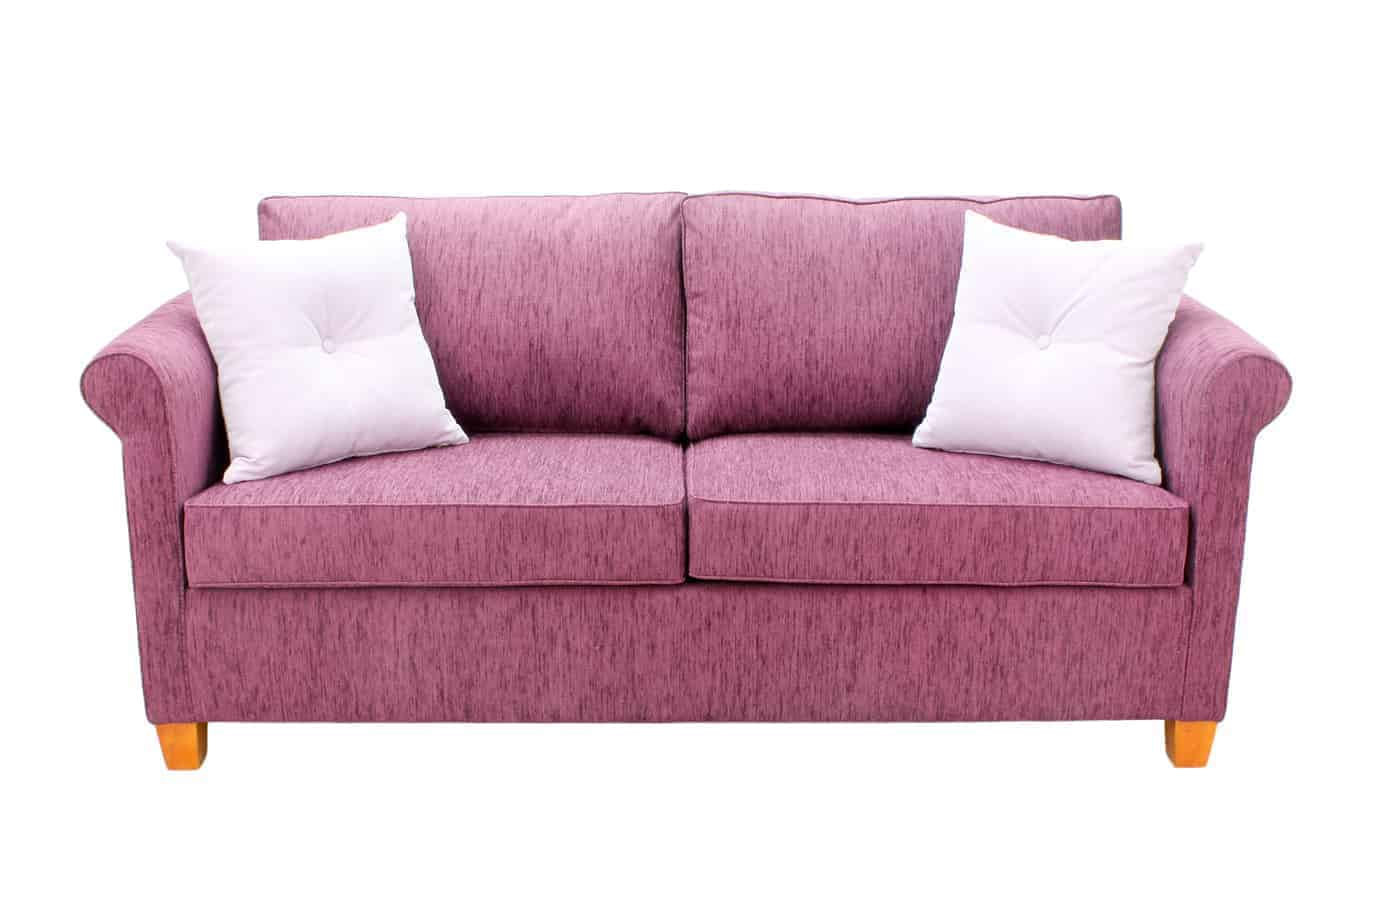 Malibu 3 Seater Queen sofa bed 1